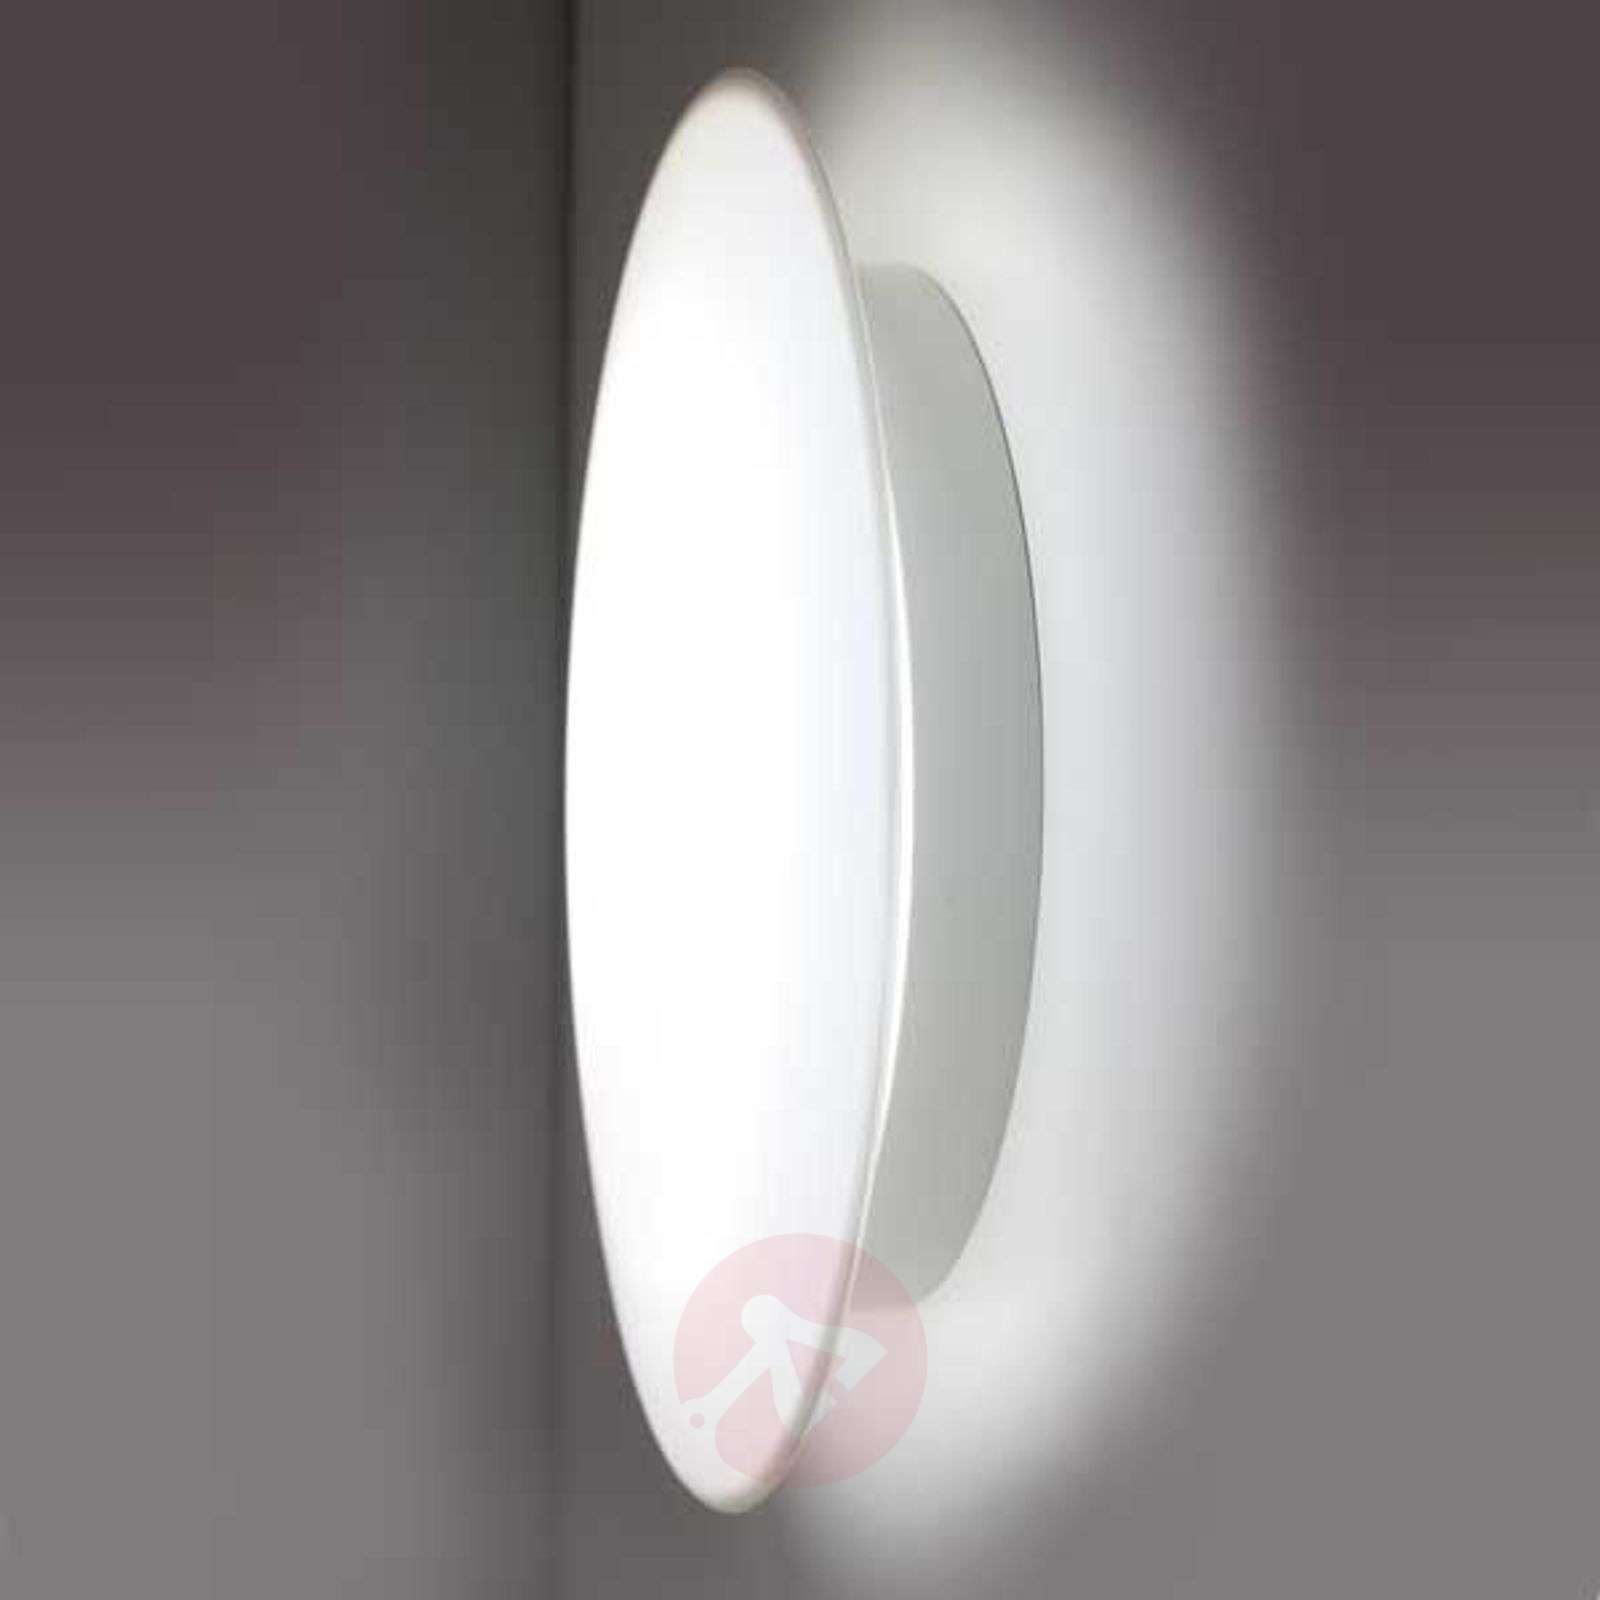 SUN 3 LED wall and ceiling light 13 W warm white-1018027-01